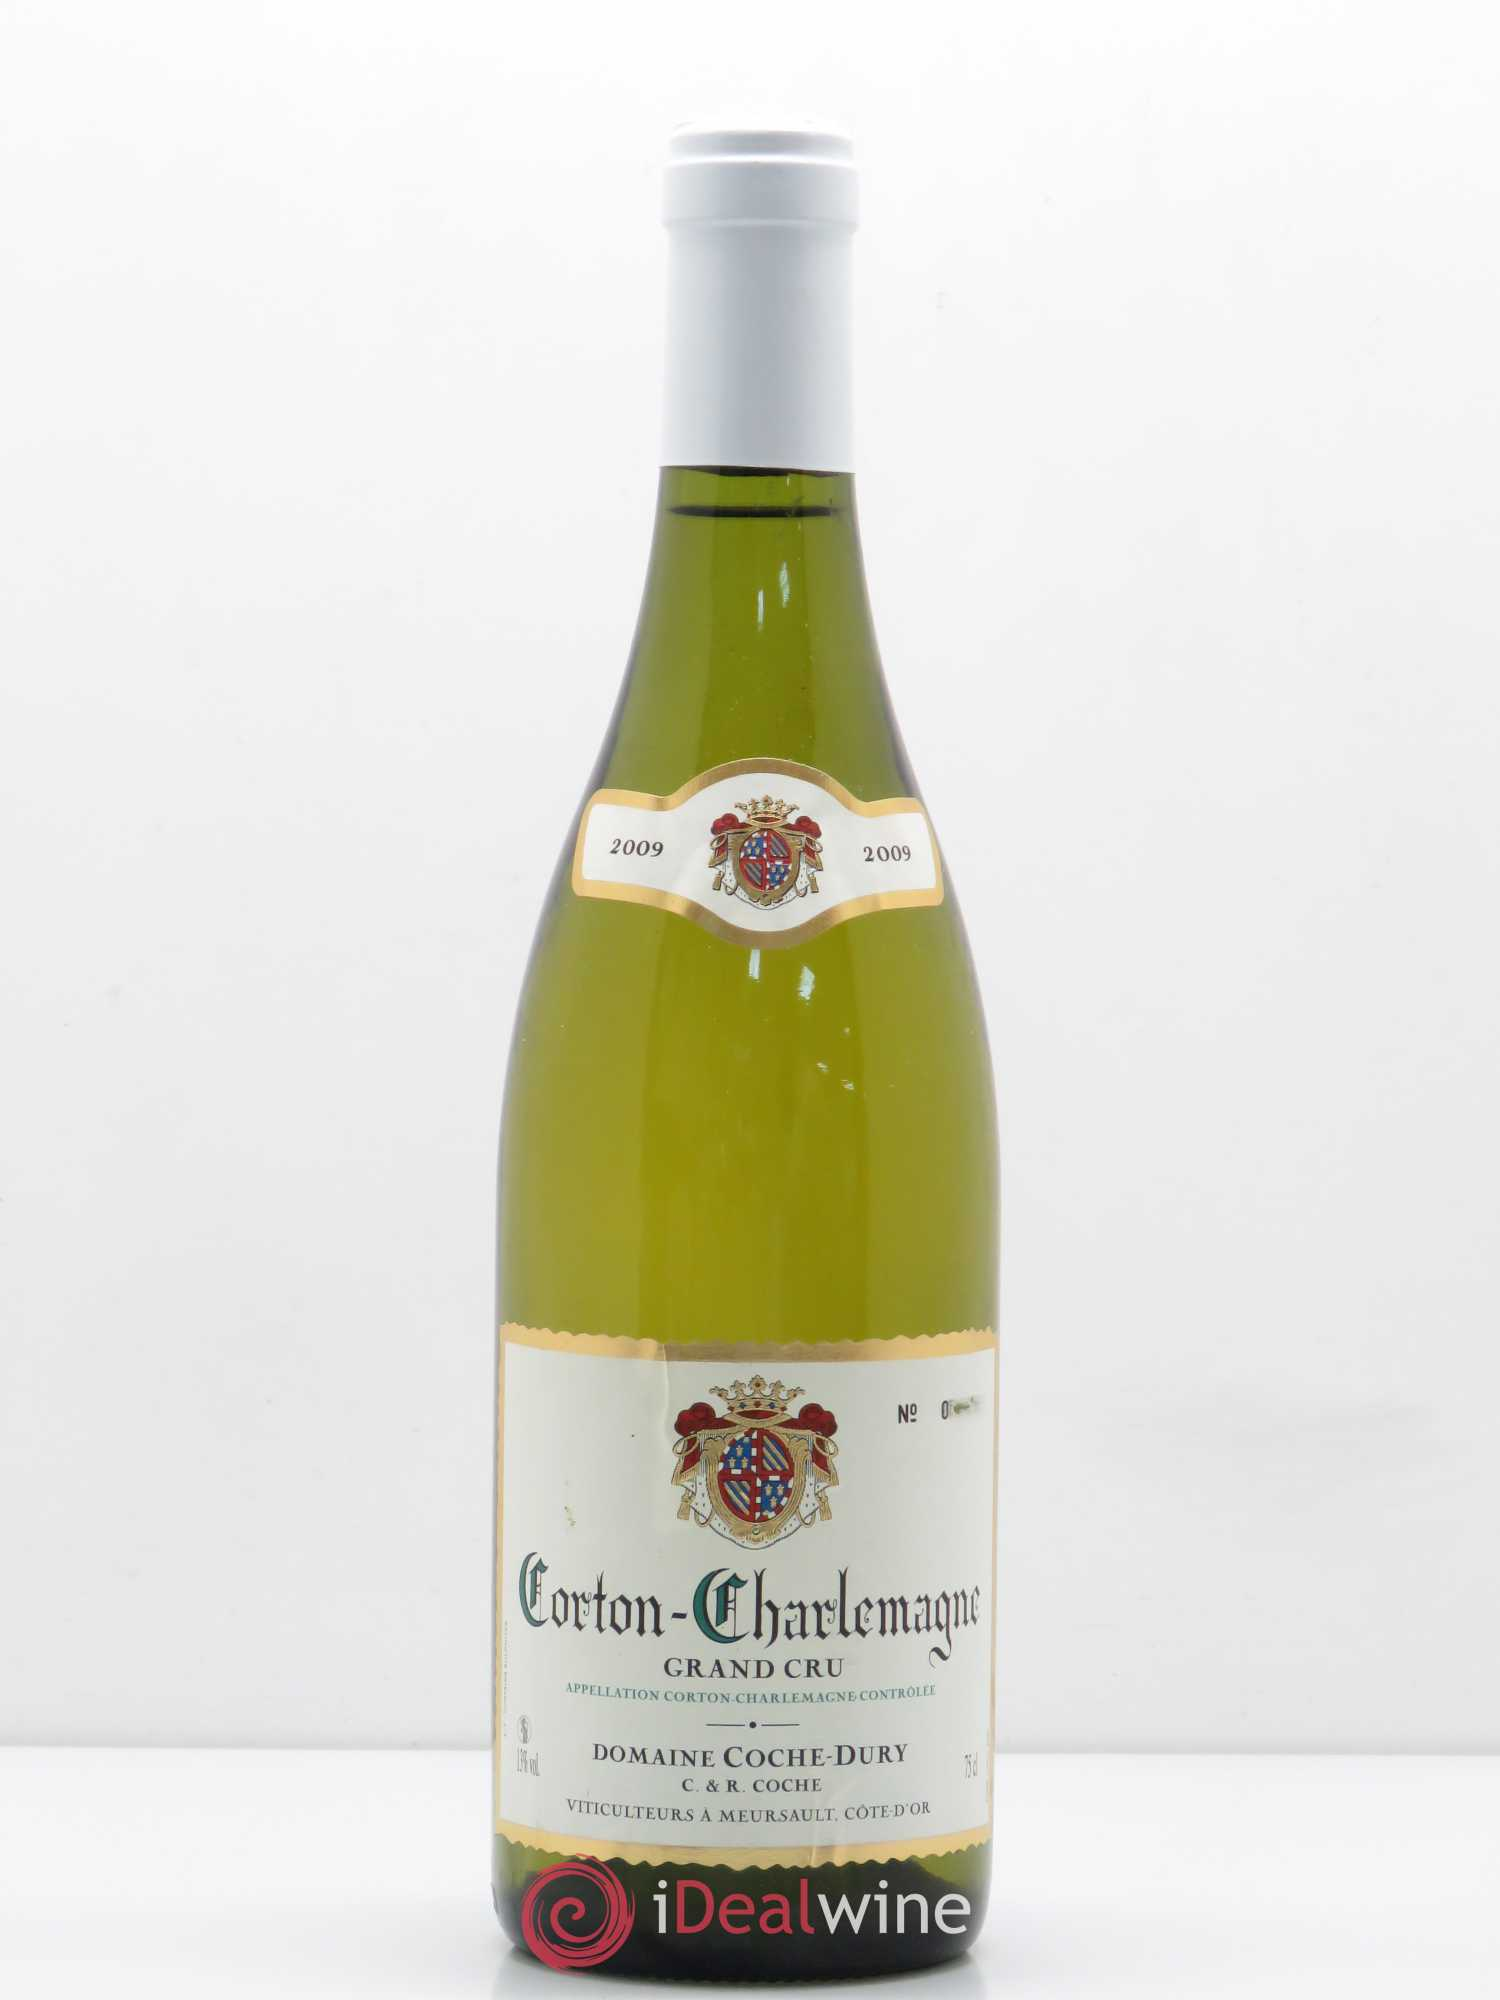 Corton-Charlemagne Grand Cru Coche Dury (Domaine) (Serial number scratched) 2009 - Lot of 1 Bottle